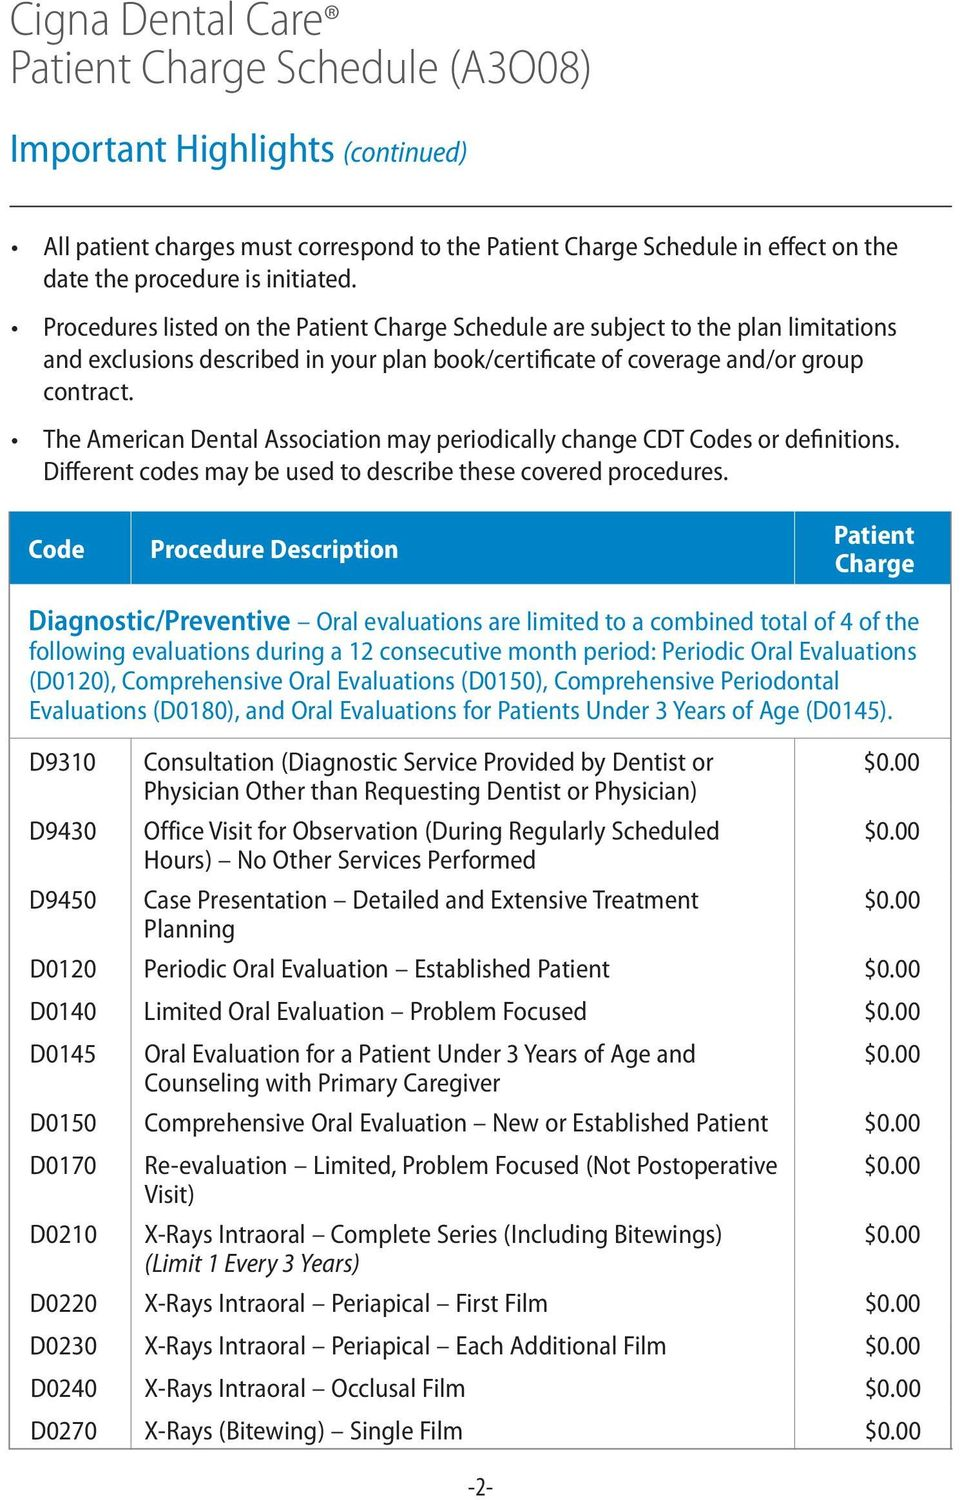 The American Dental Association may periodically change CDT s or definitions. Different codes may be used to describe these covered procedures.